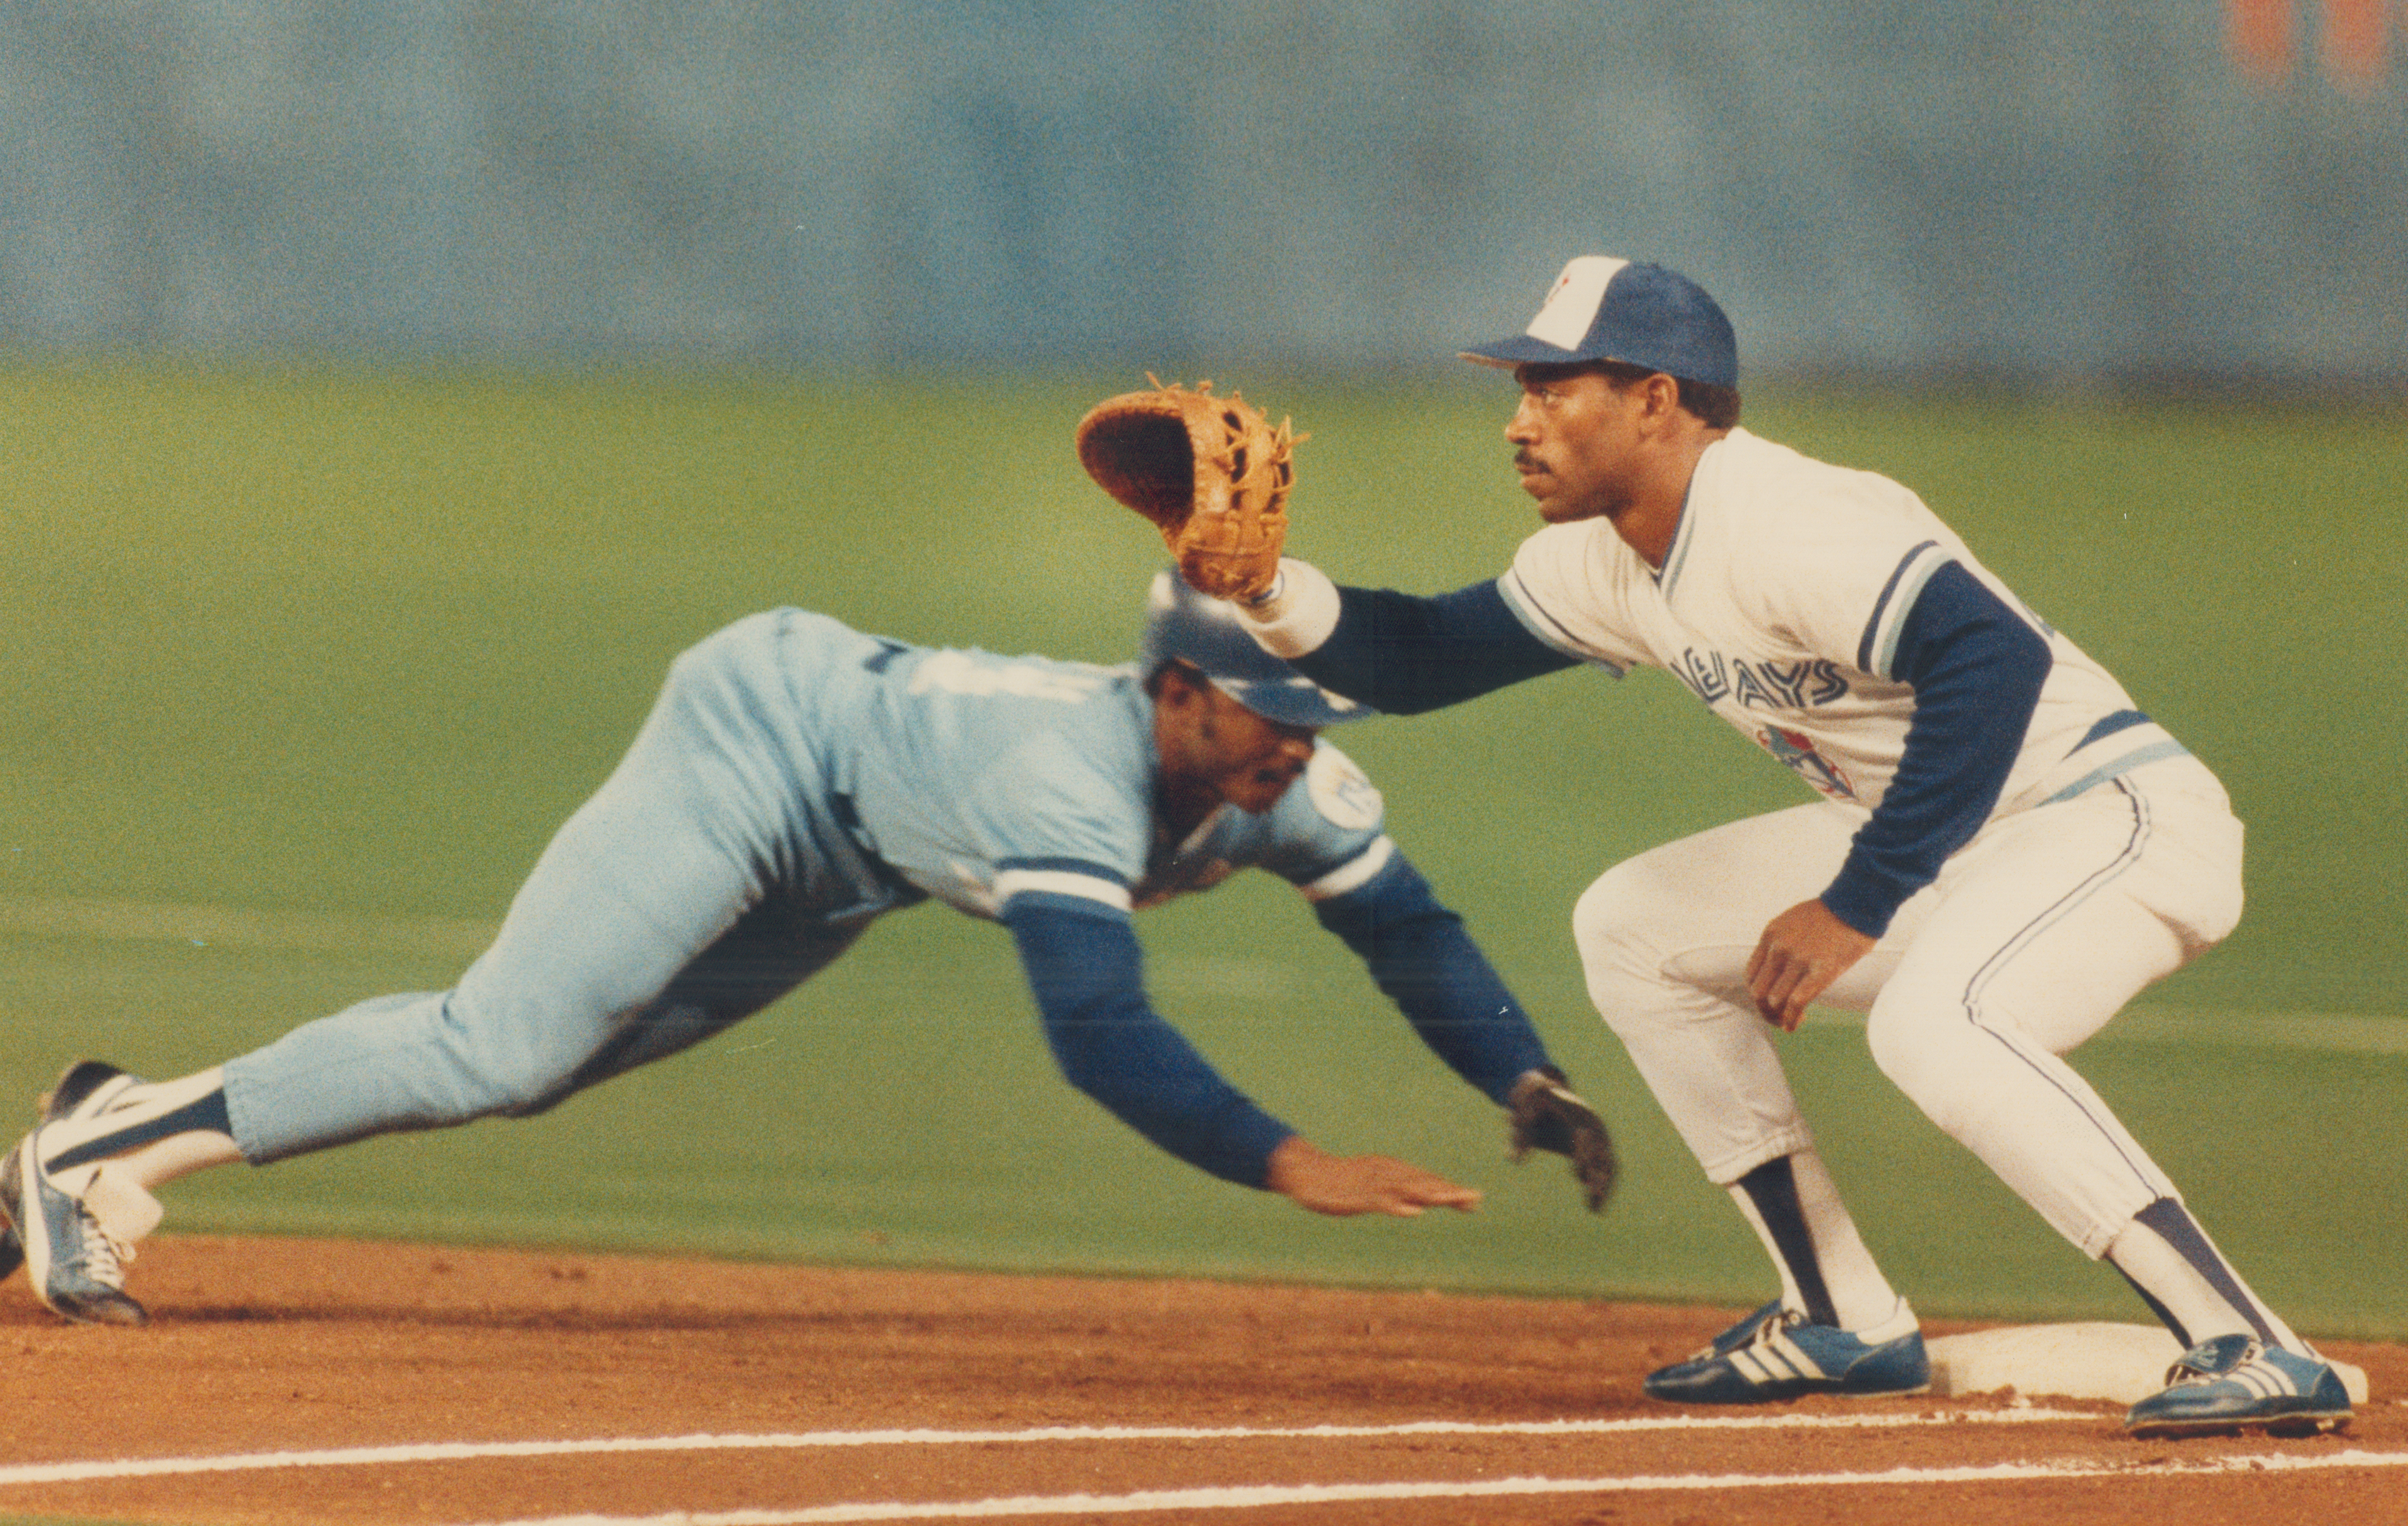 Close enough: Kansas City leftfielder Lonnie Smith does a racing dive to get back to first base on a